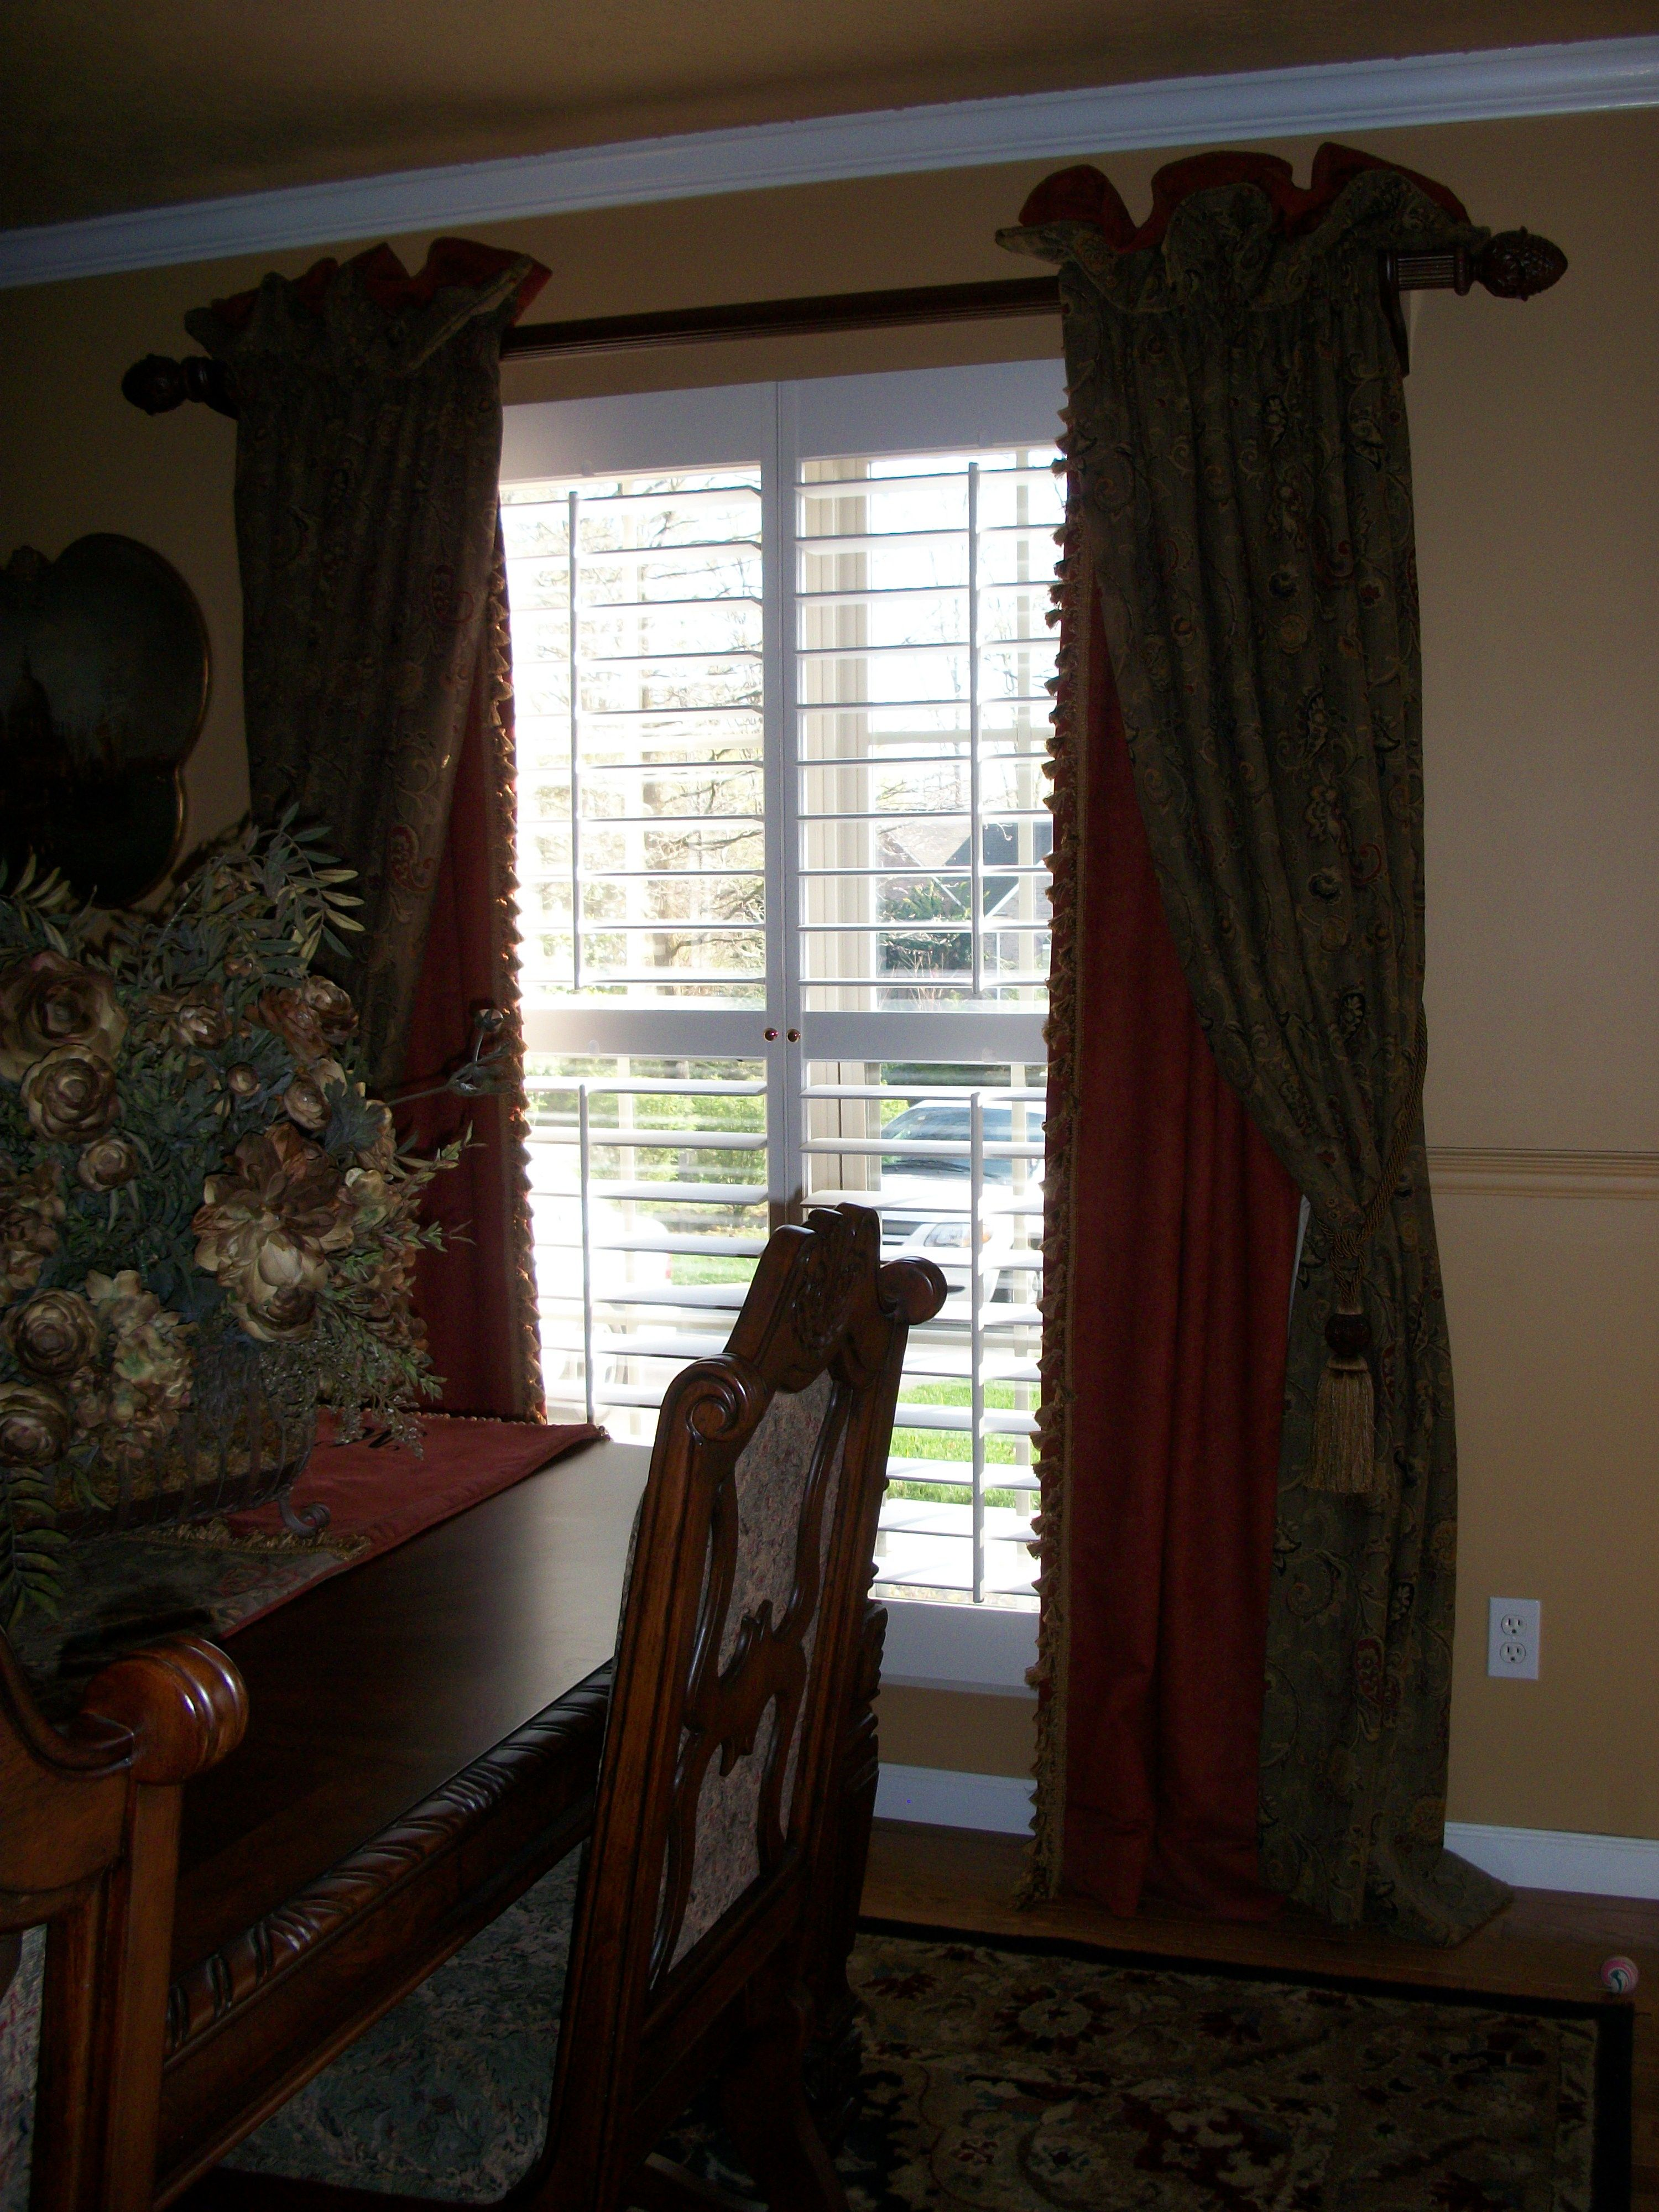 One Of The Most Glorious Dining Room Drape Designsfrom Vincy Amazing Drapes For Dining Room Decorating Inspiration